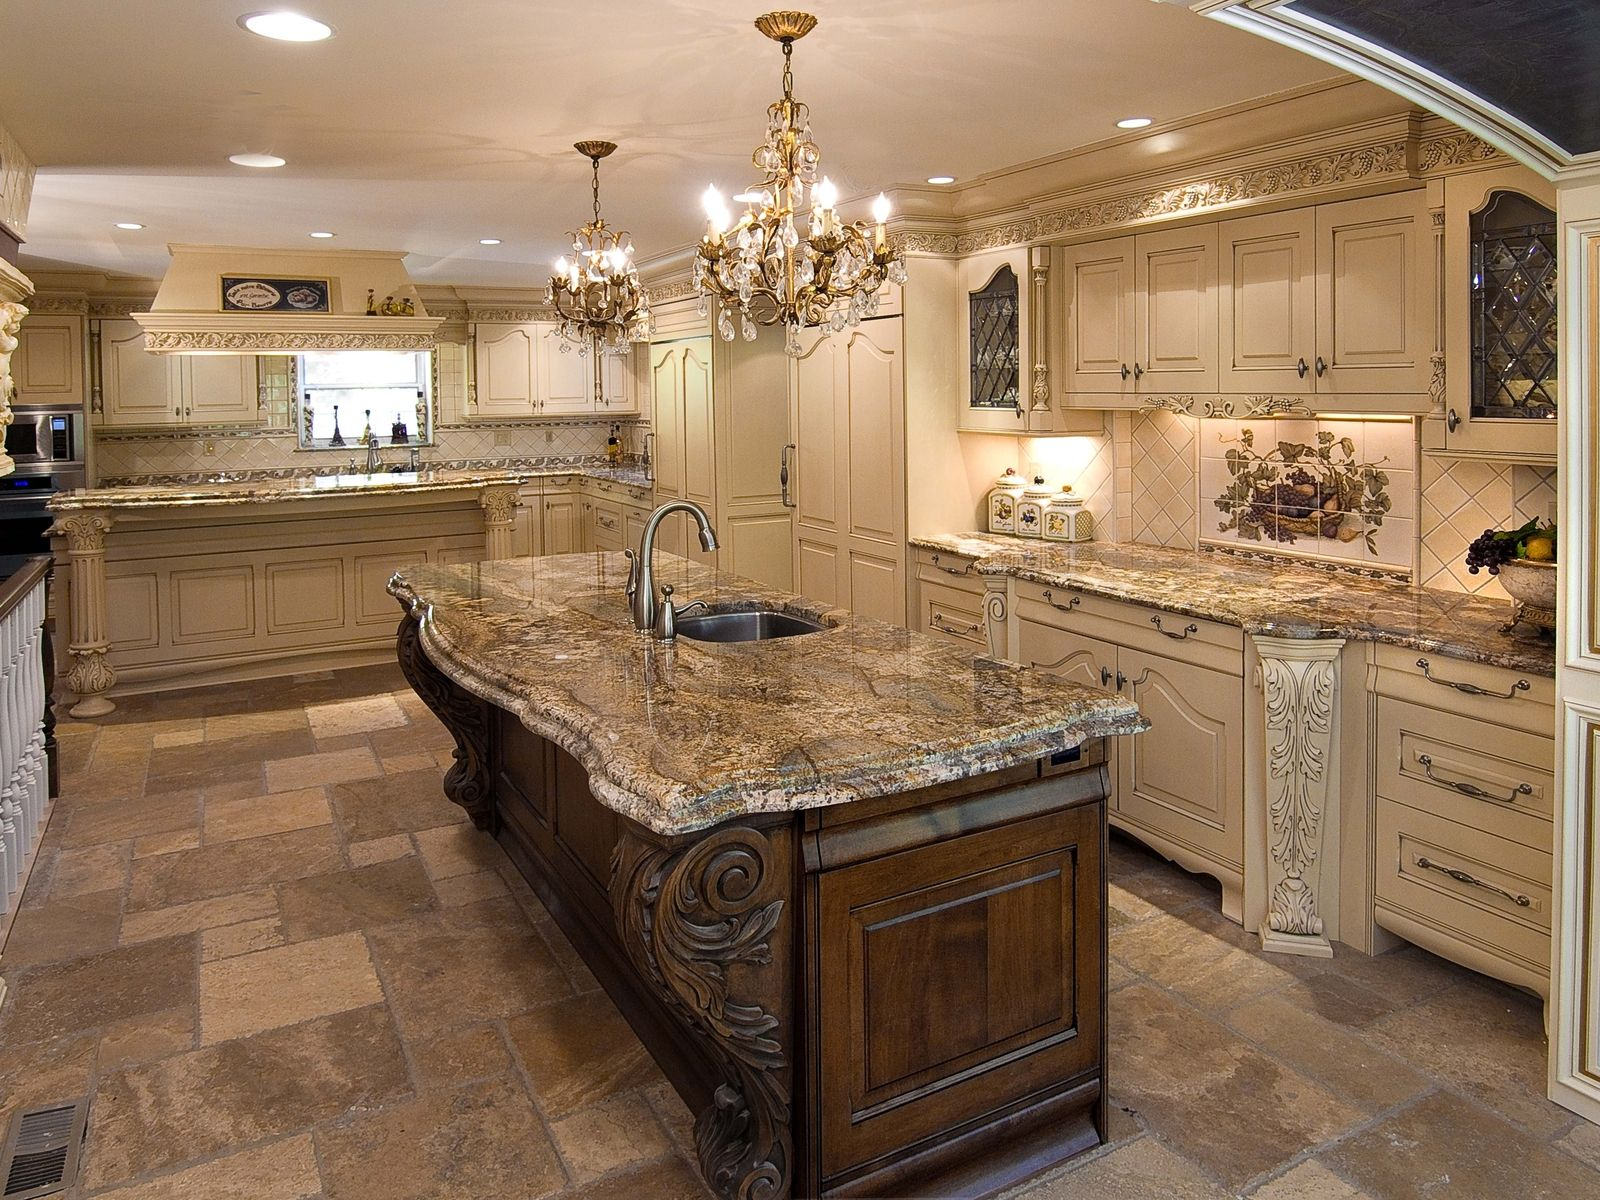 ornate kitchen Custom Made Ornate Kitchen by